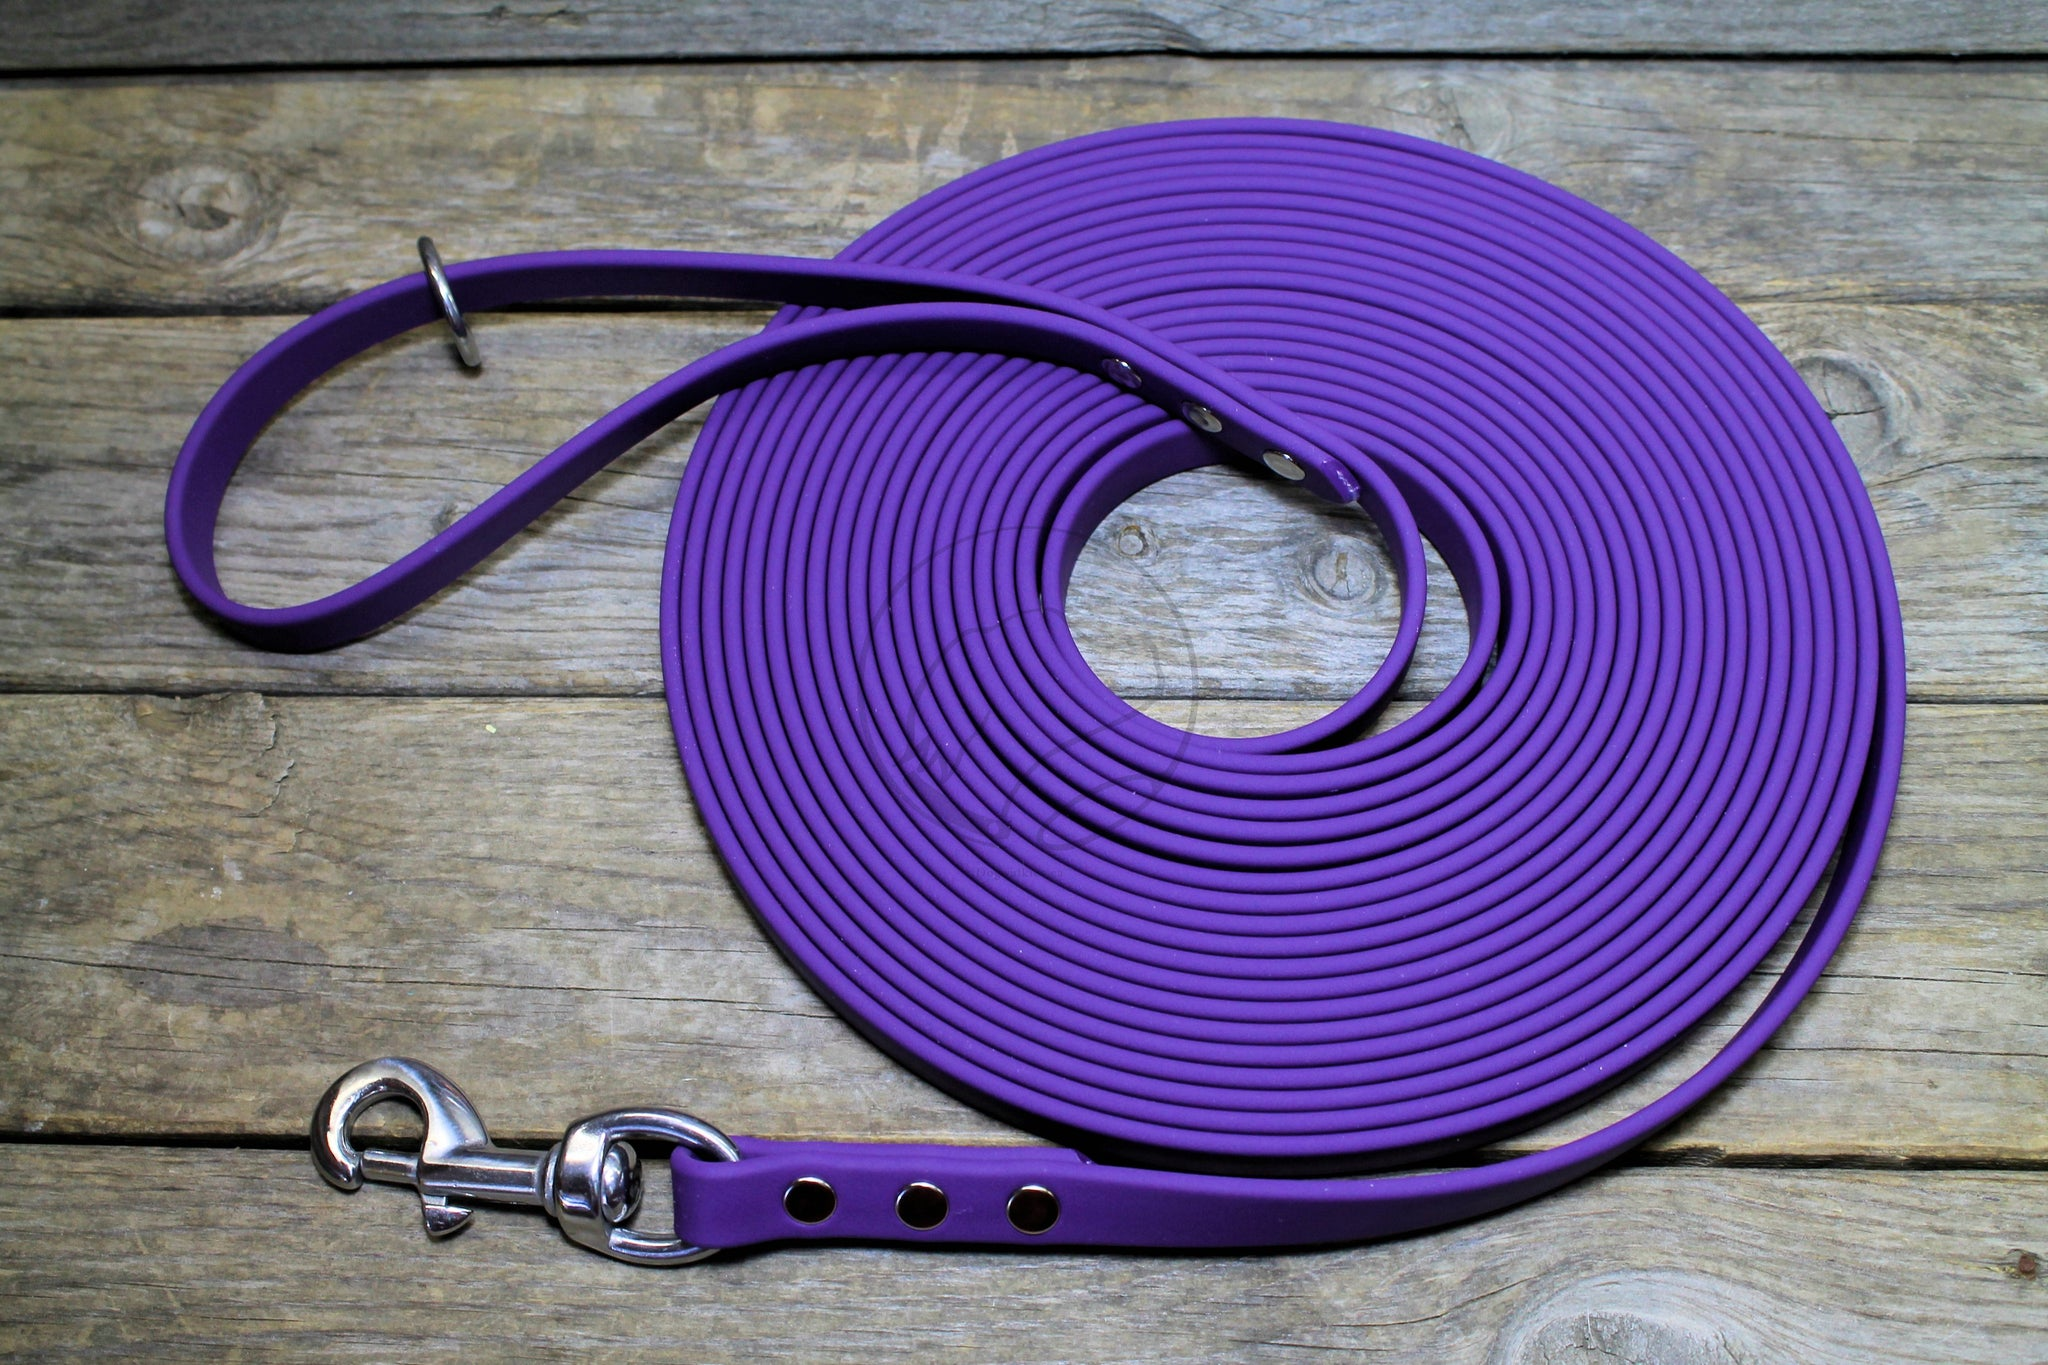 "Stronger Weight Biothane 5/8"" (16mm) Tracking Recall Long Line - waterproof leash for large dogs or stronger pullers"